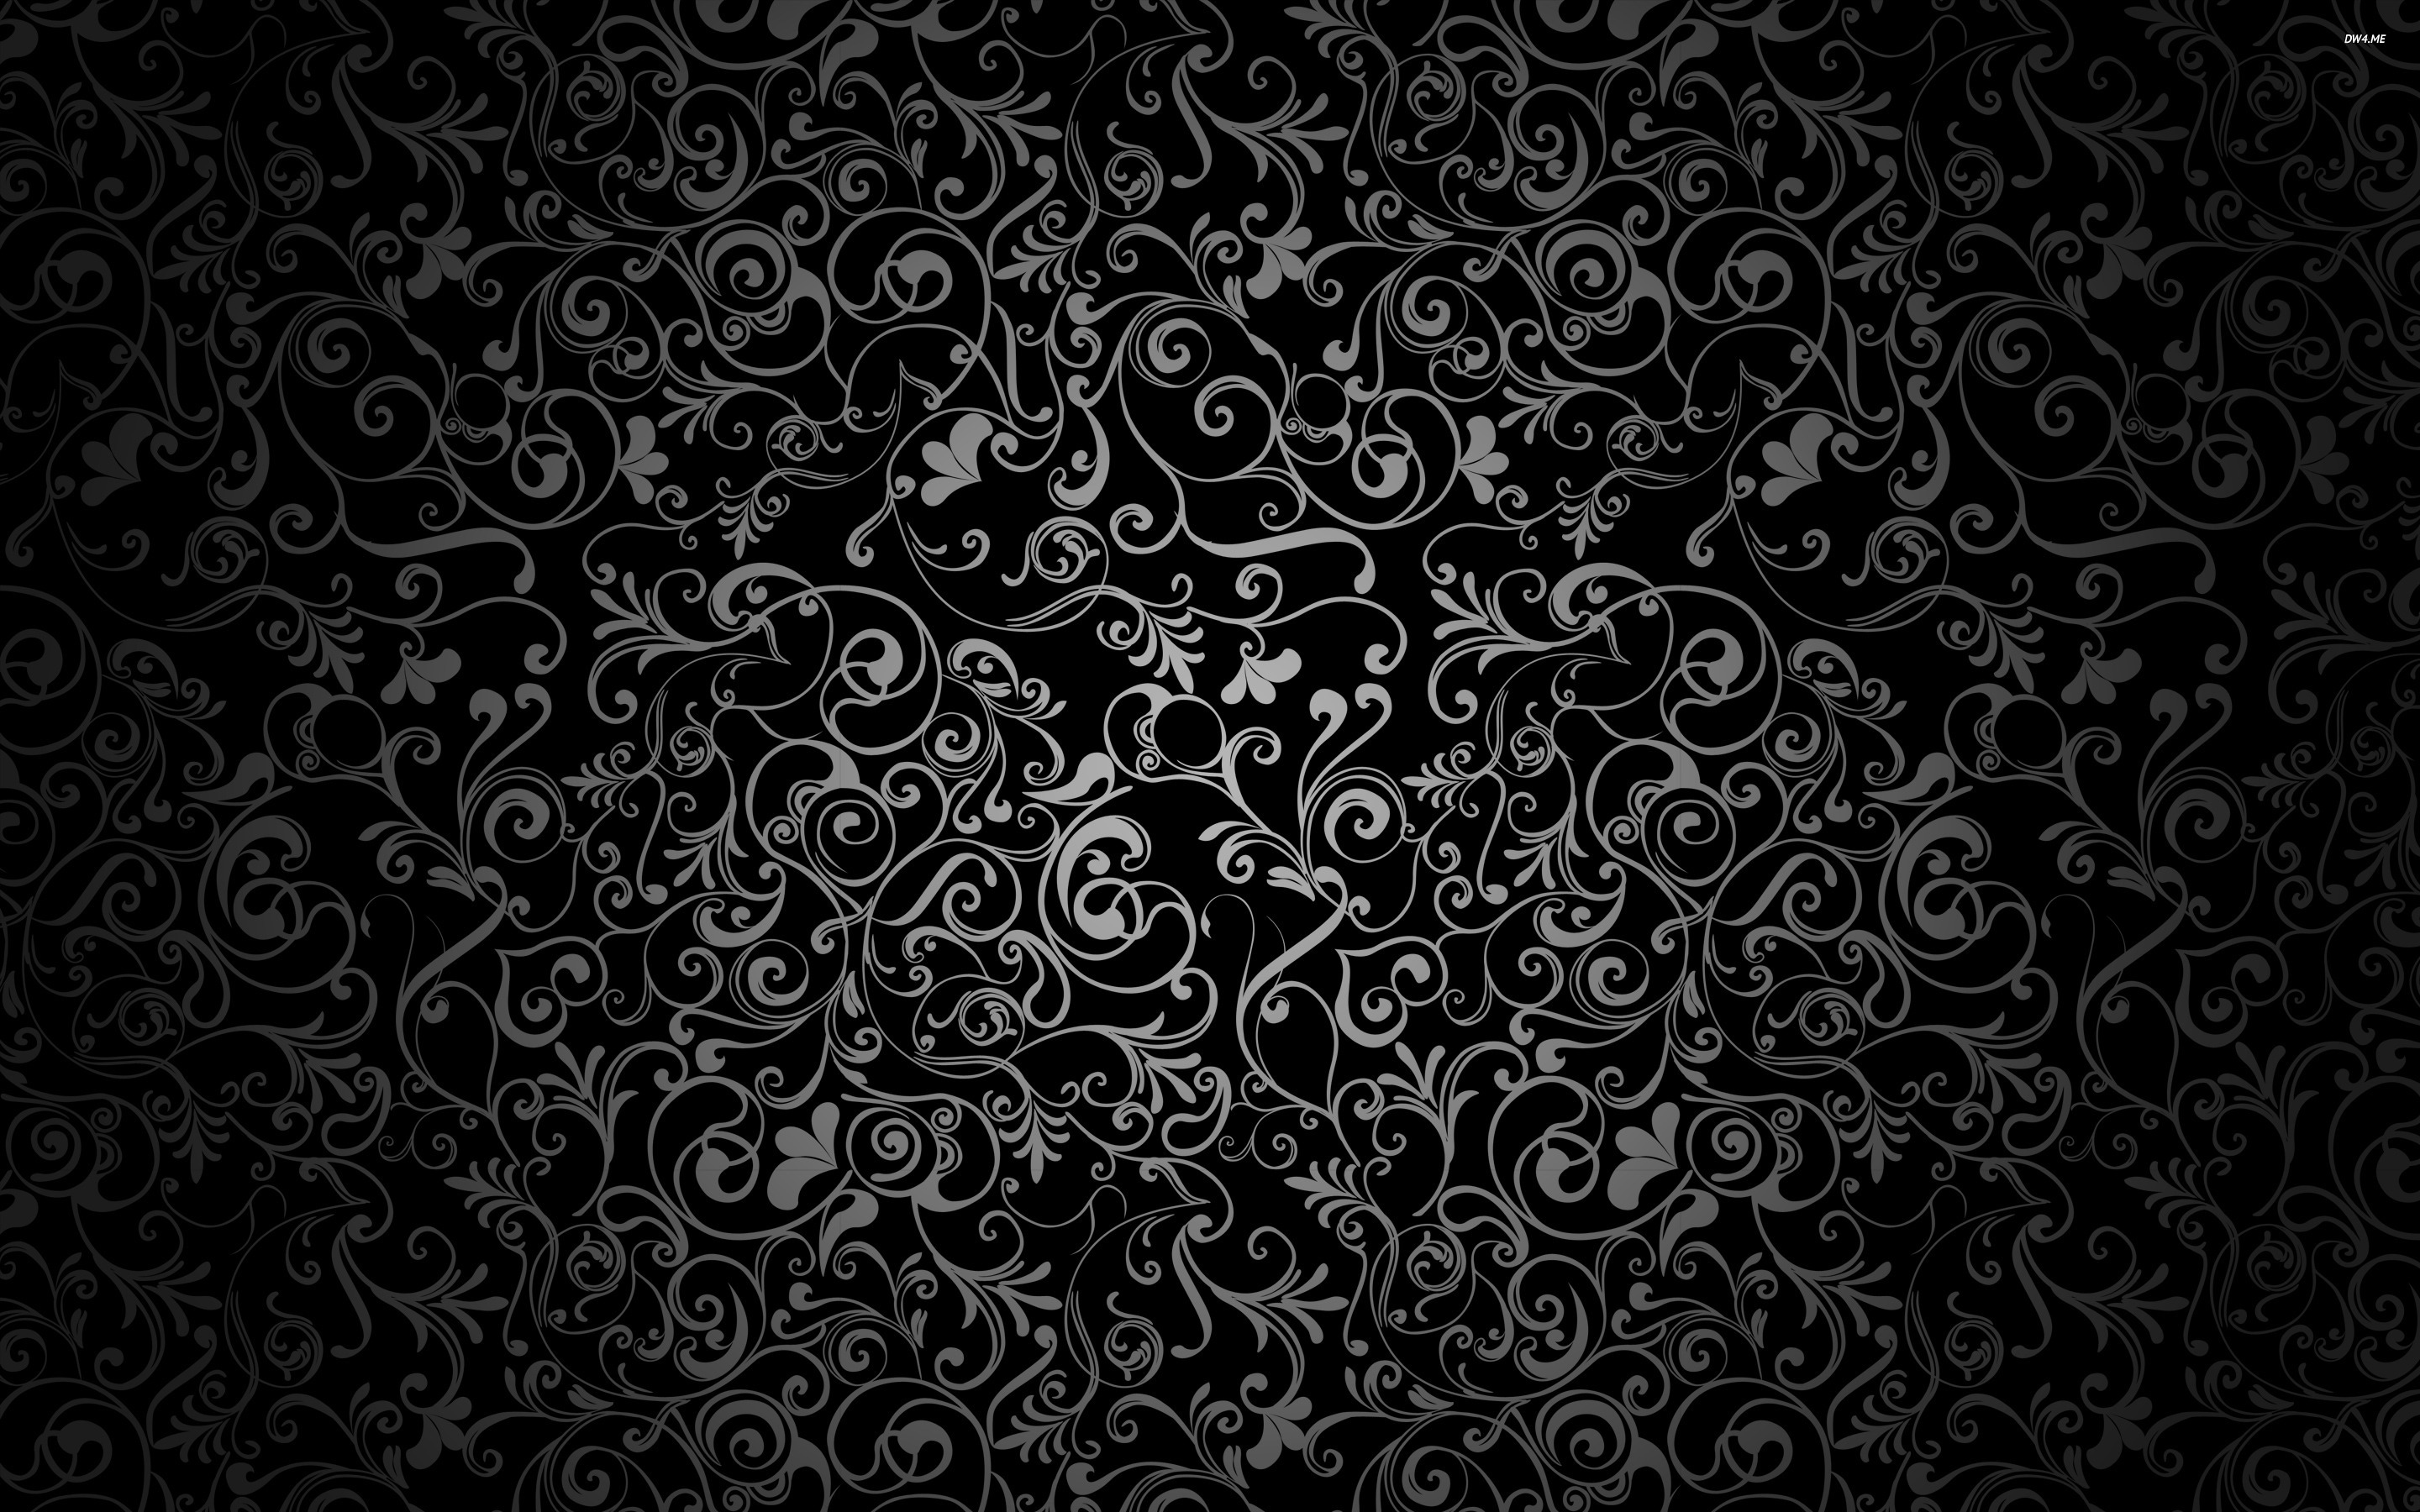 Floral pattern wallpaper   Vector wallpapers   1923 2880x1800